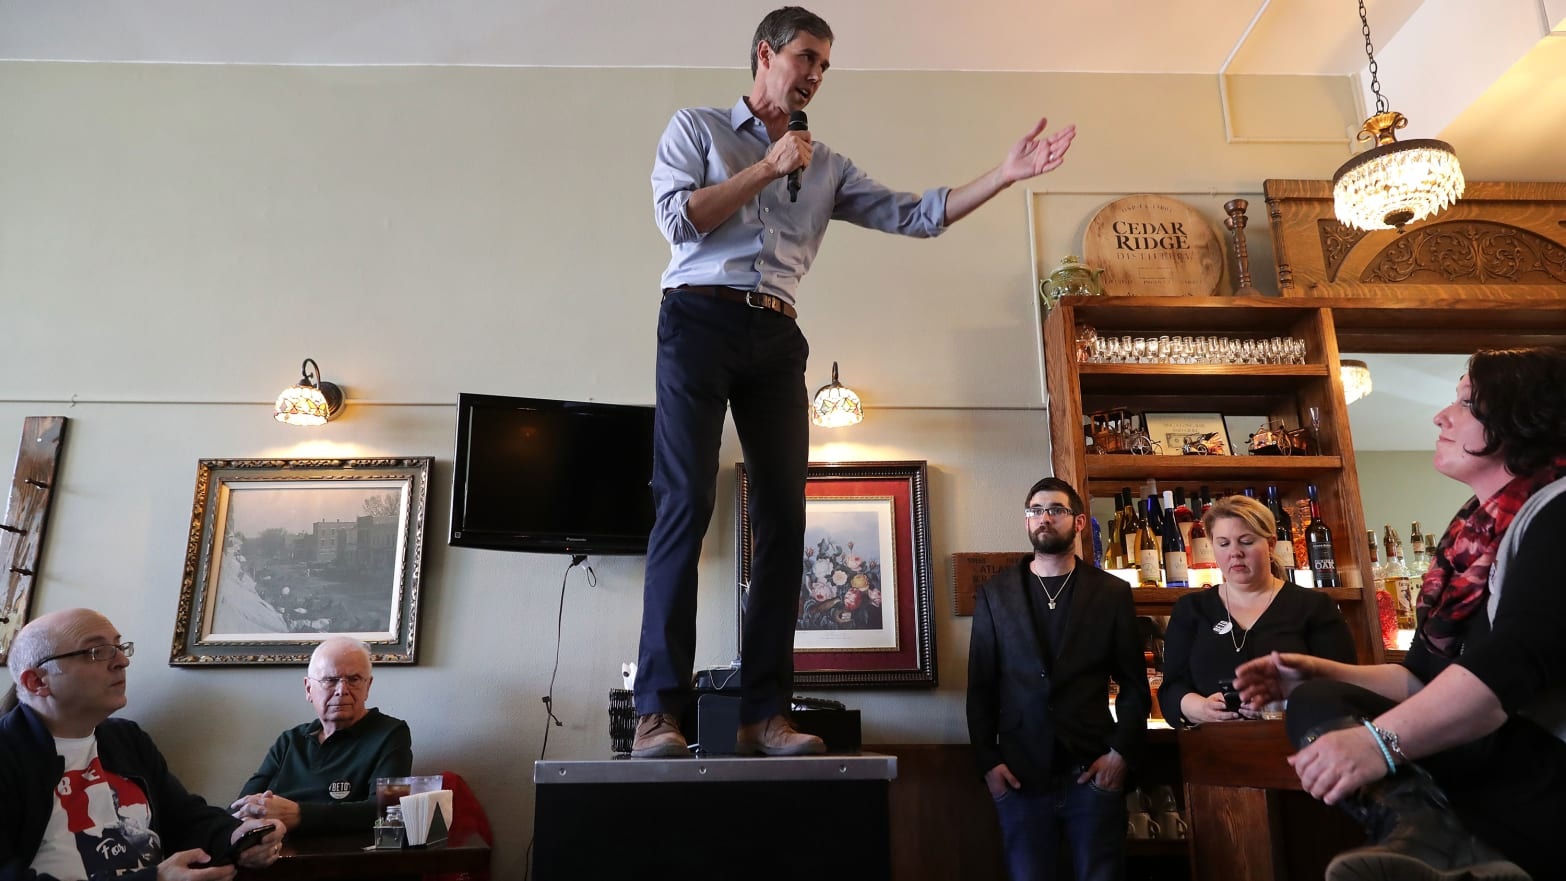 Baristas to Beto O'Rourke: Come On Man, Get Off Our Counters